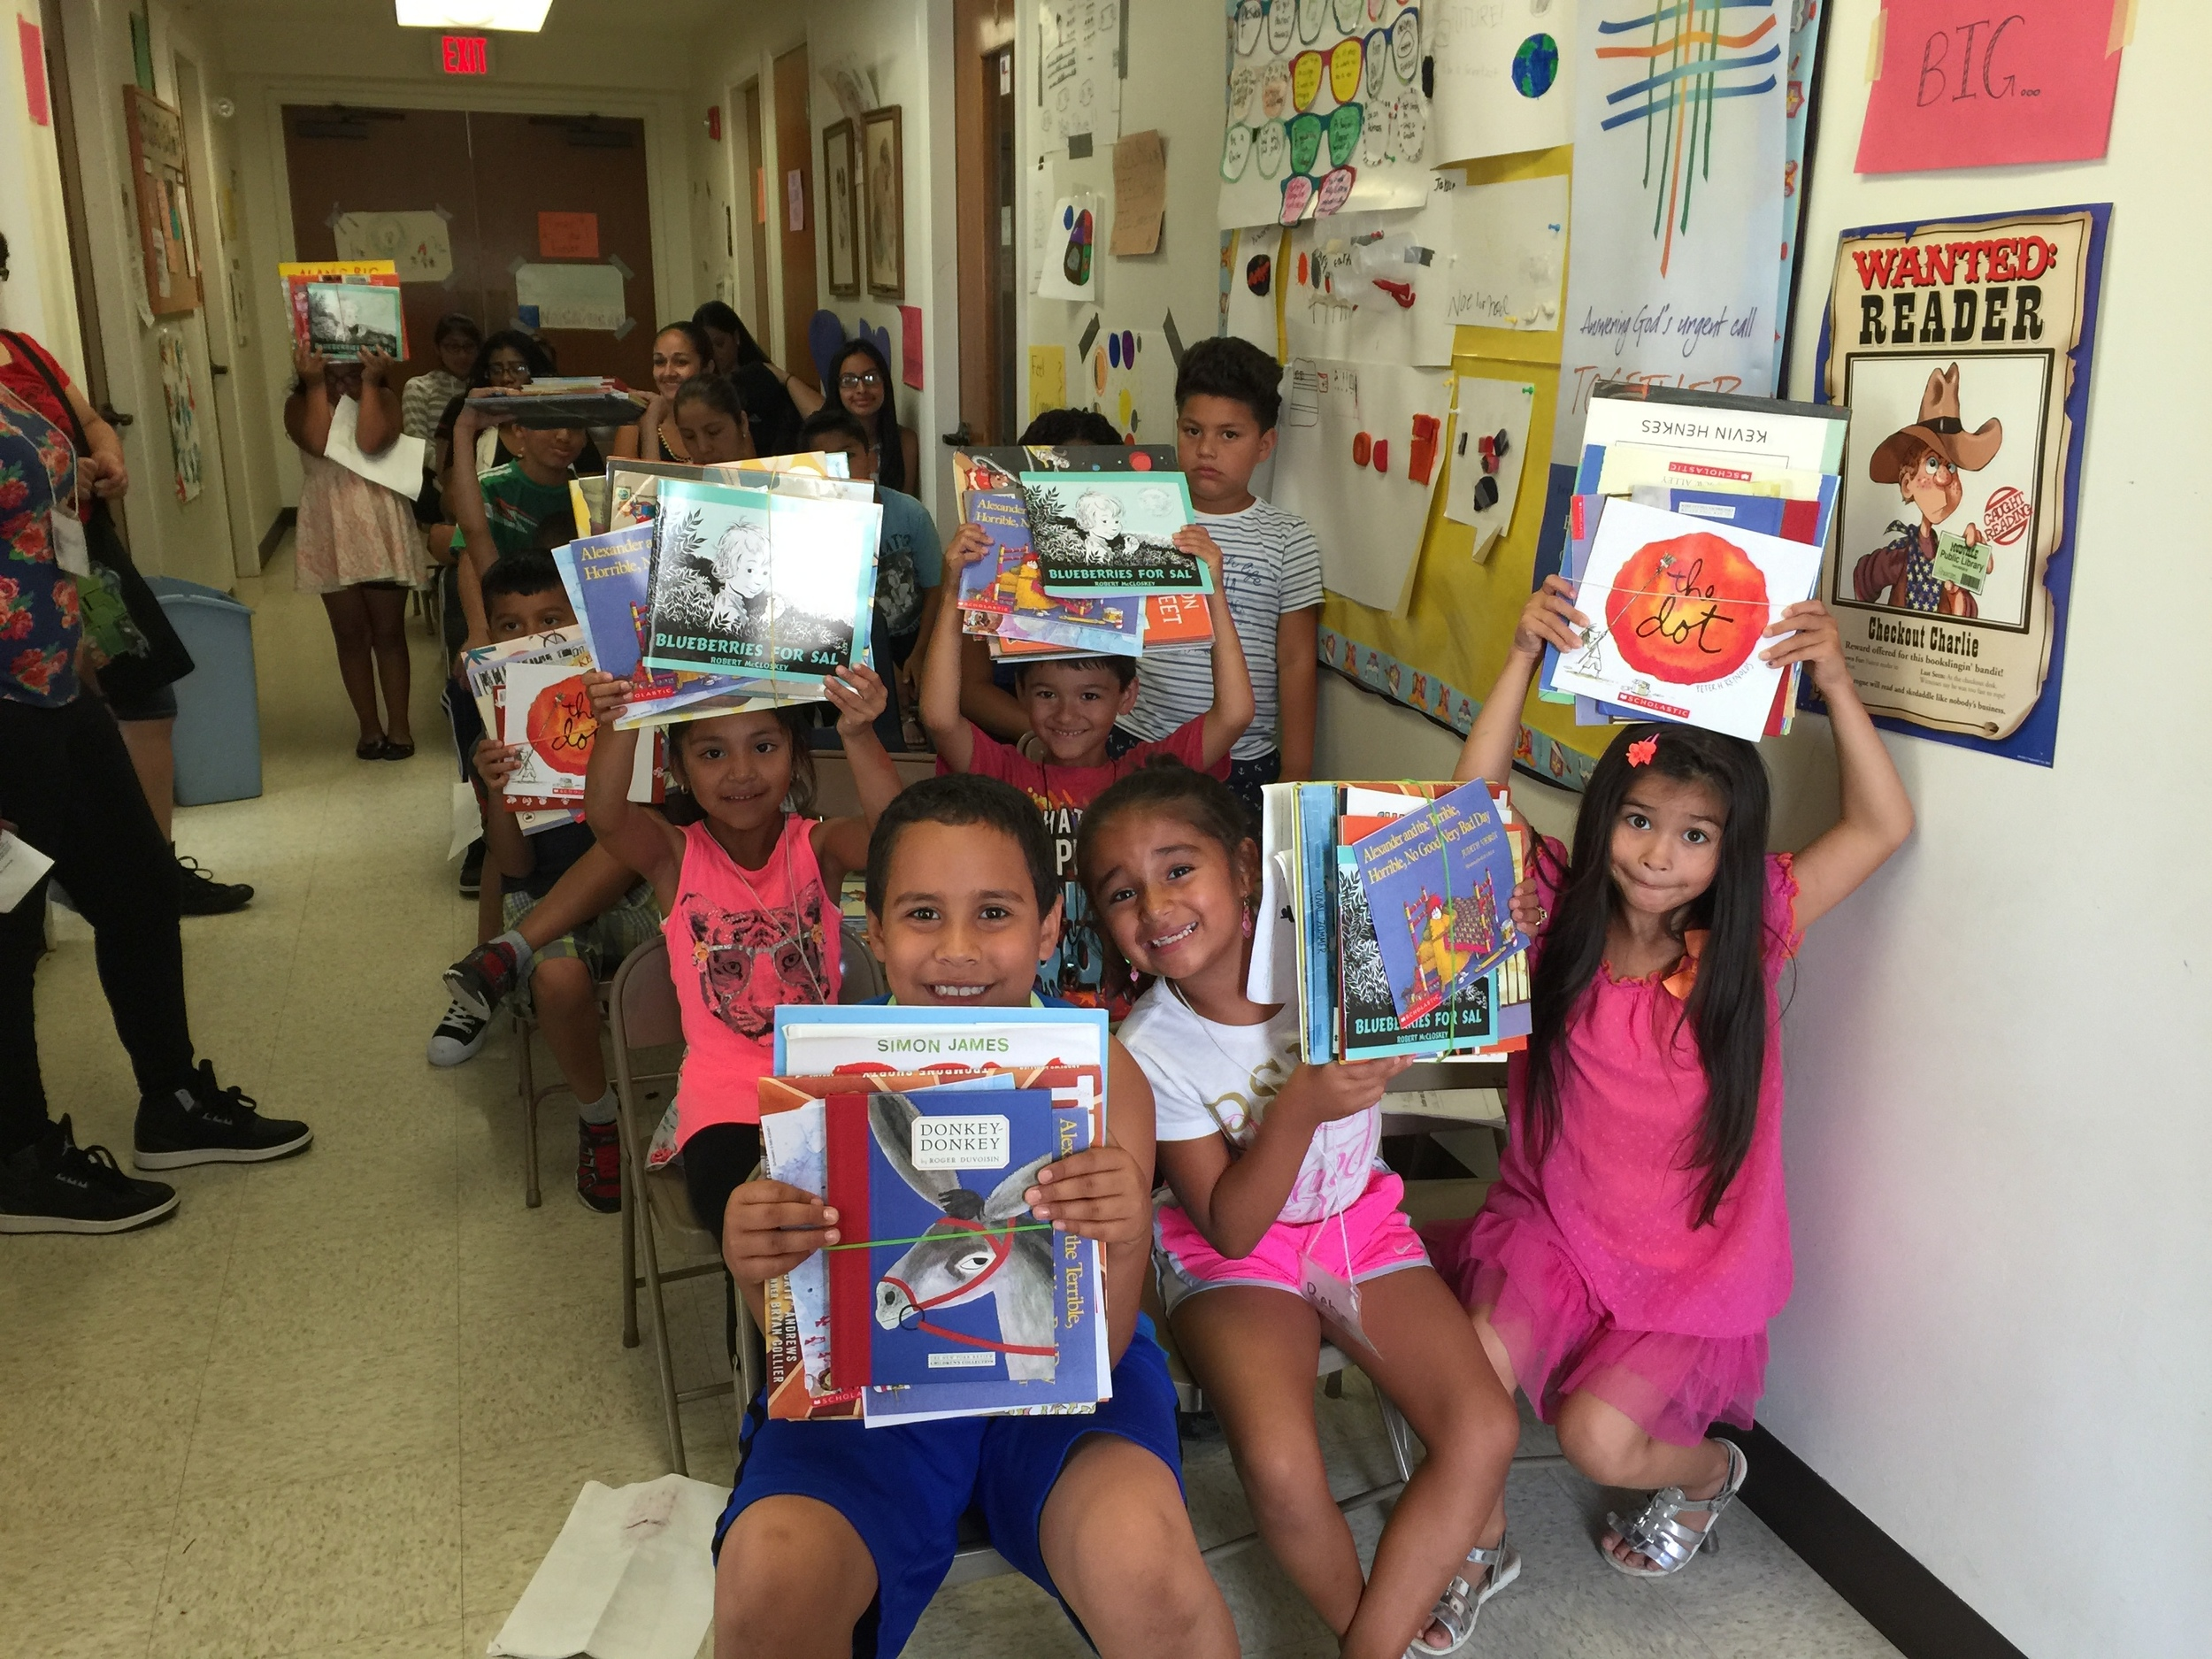 It's Christmas in July with children excited to receive books to take home and read.